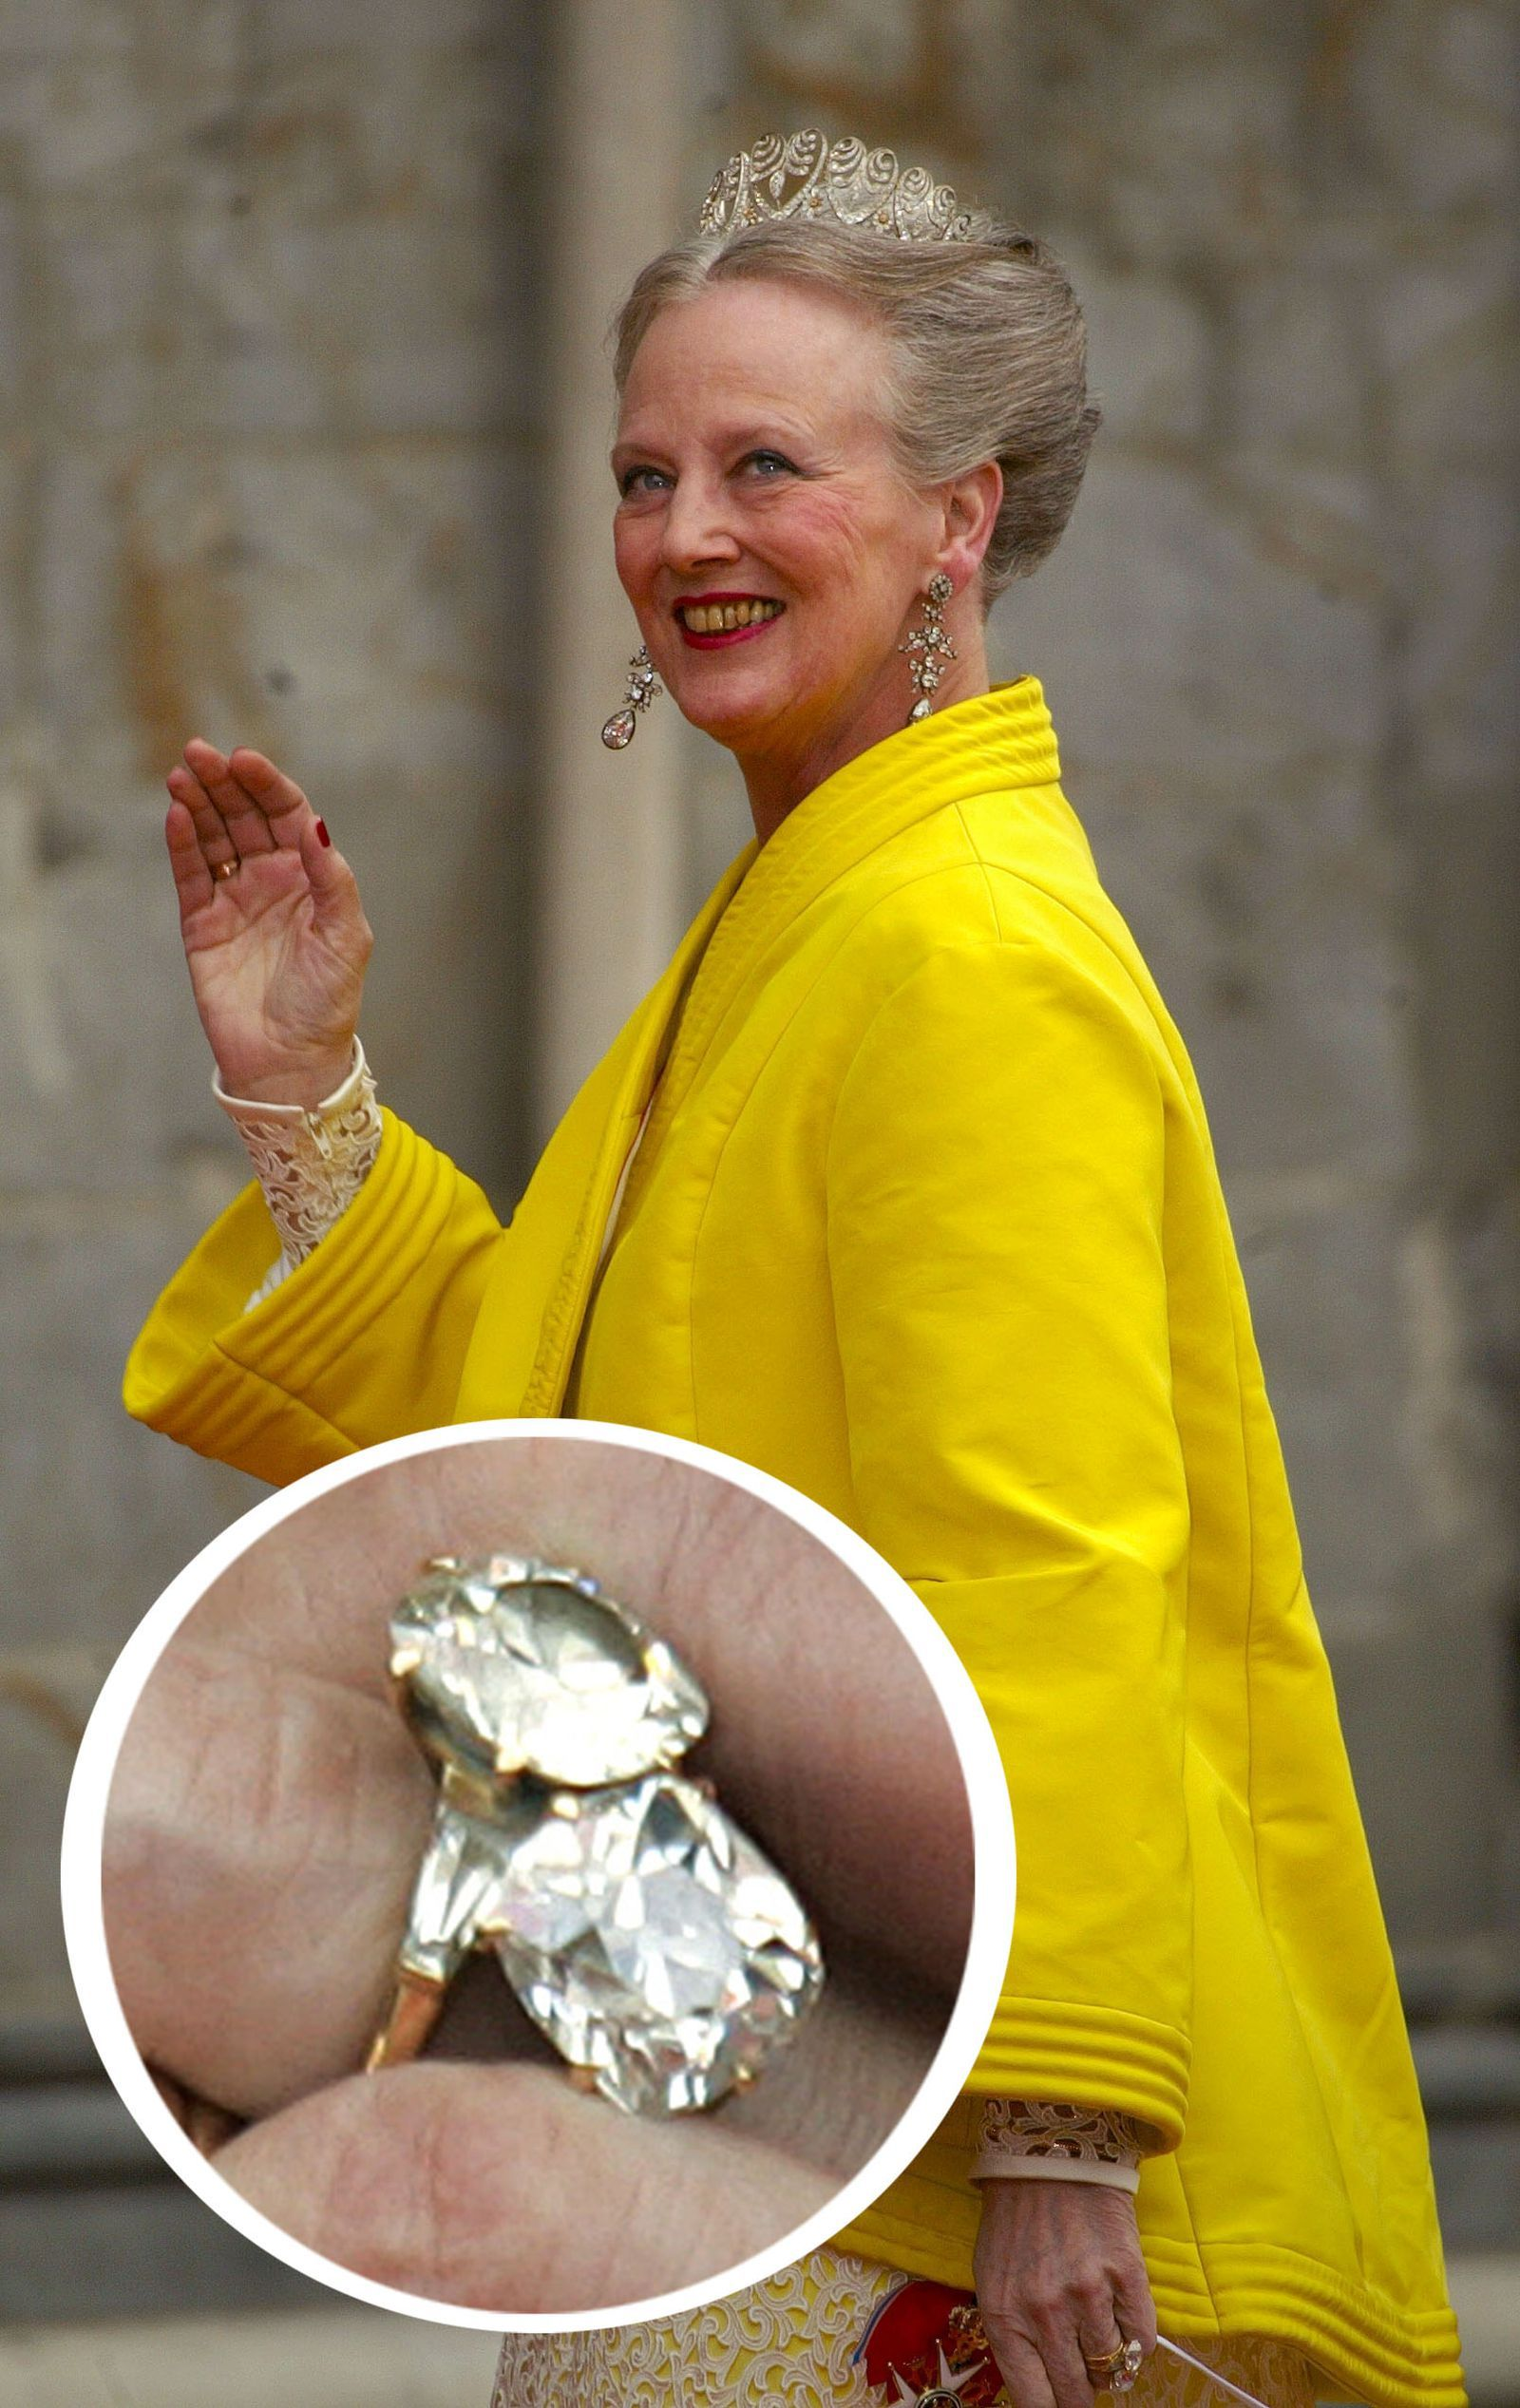 The Most Famous Royal Engagement Rings In Recent History Royal Engagement Rings Royal Engagement Royal Jewelry